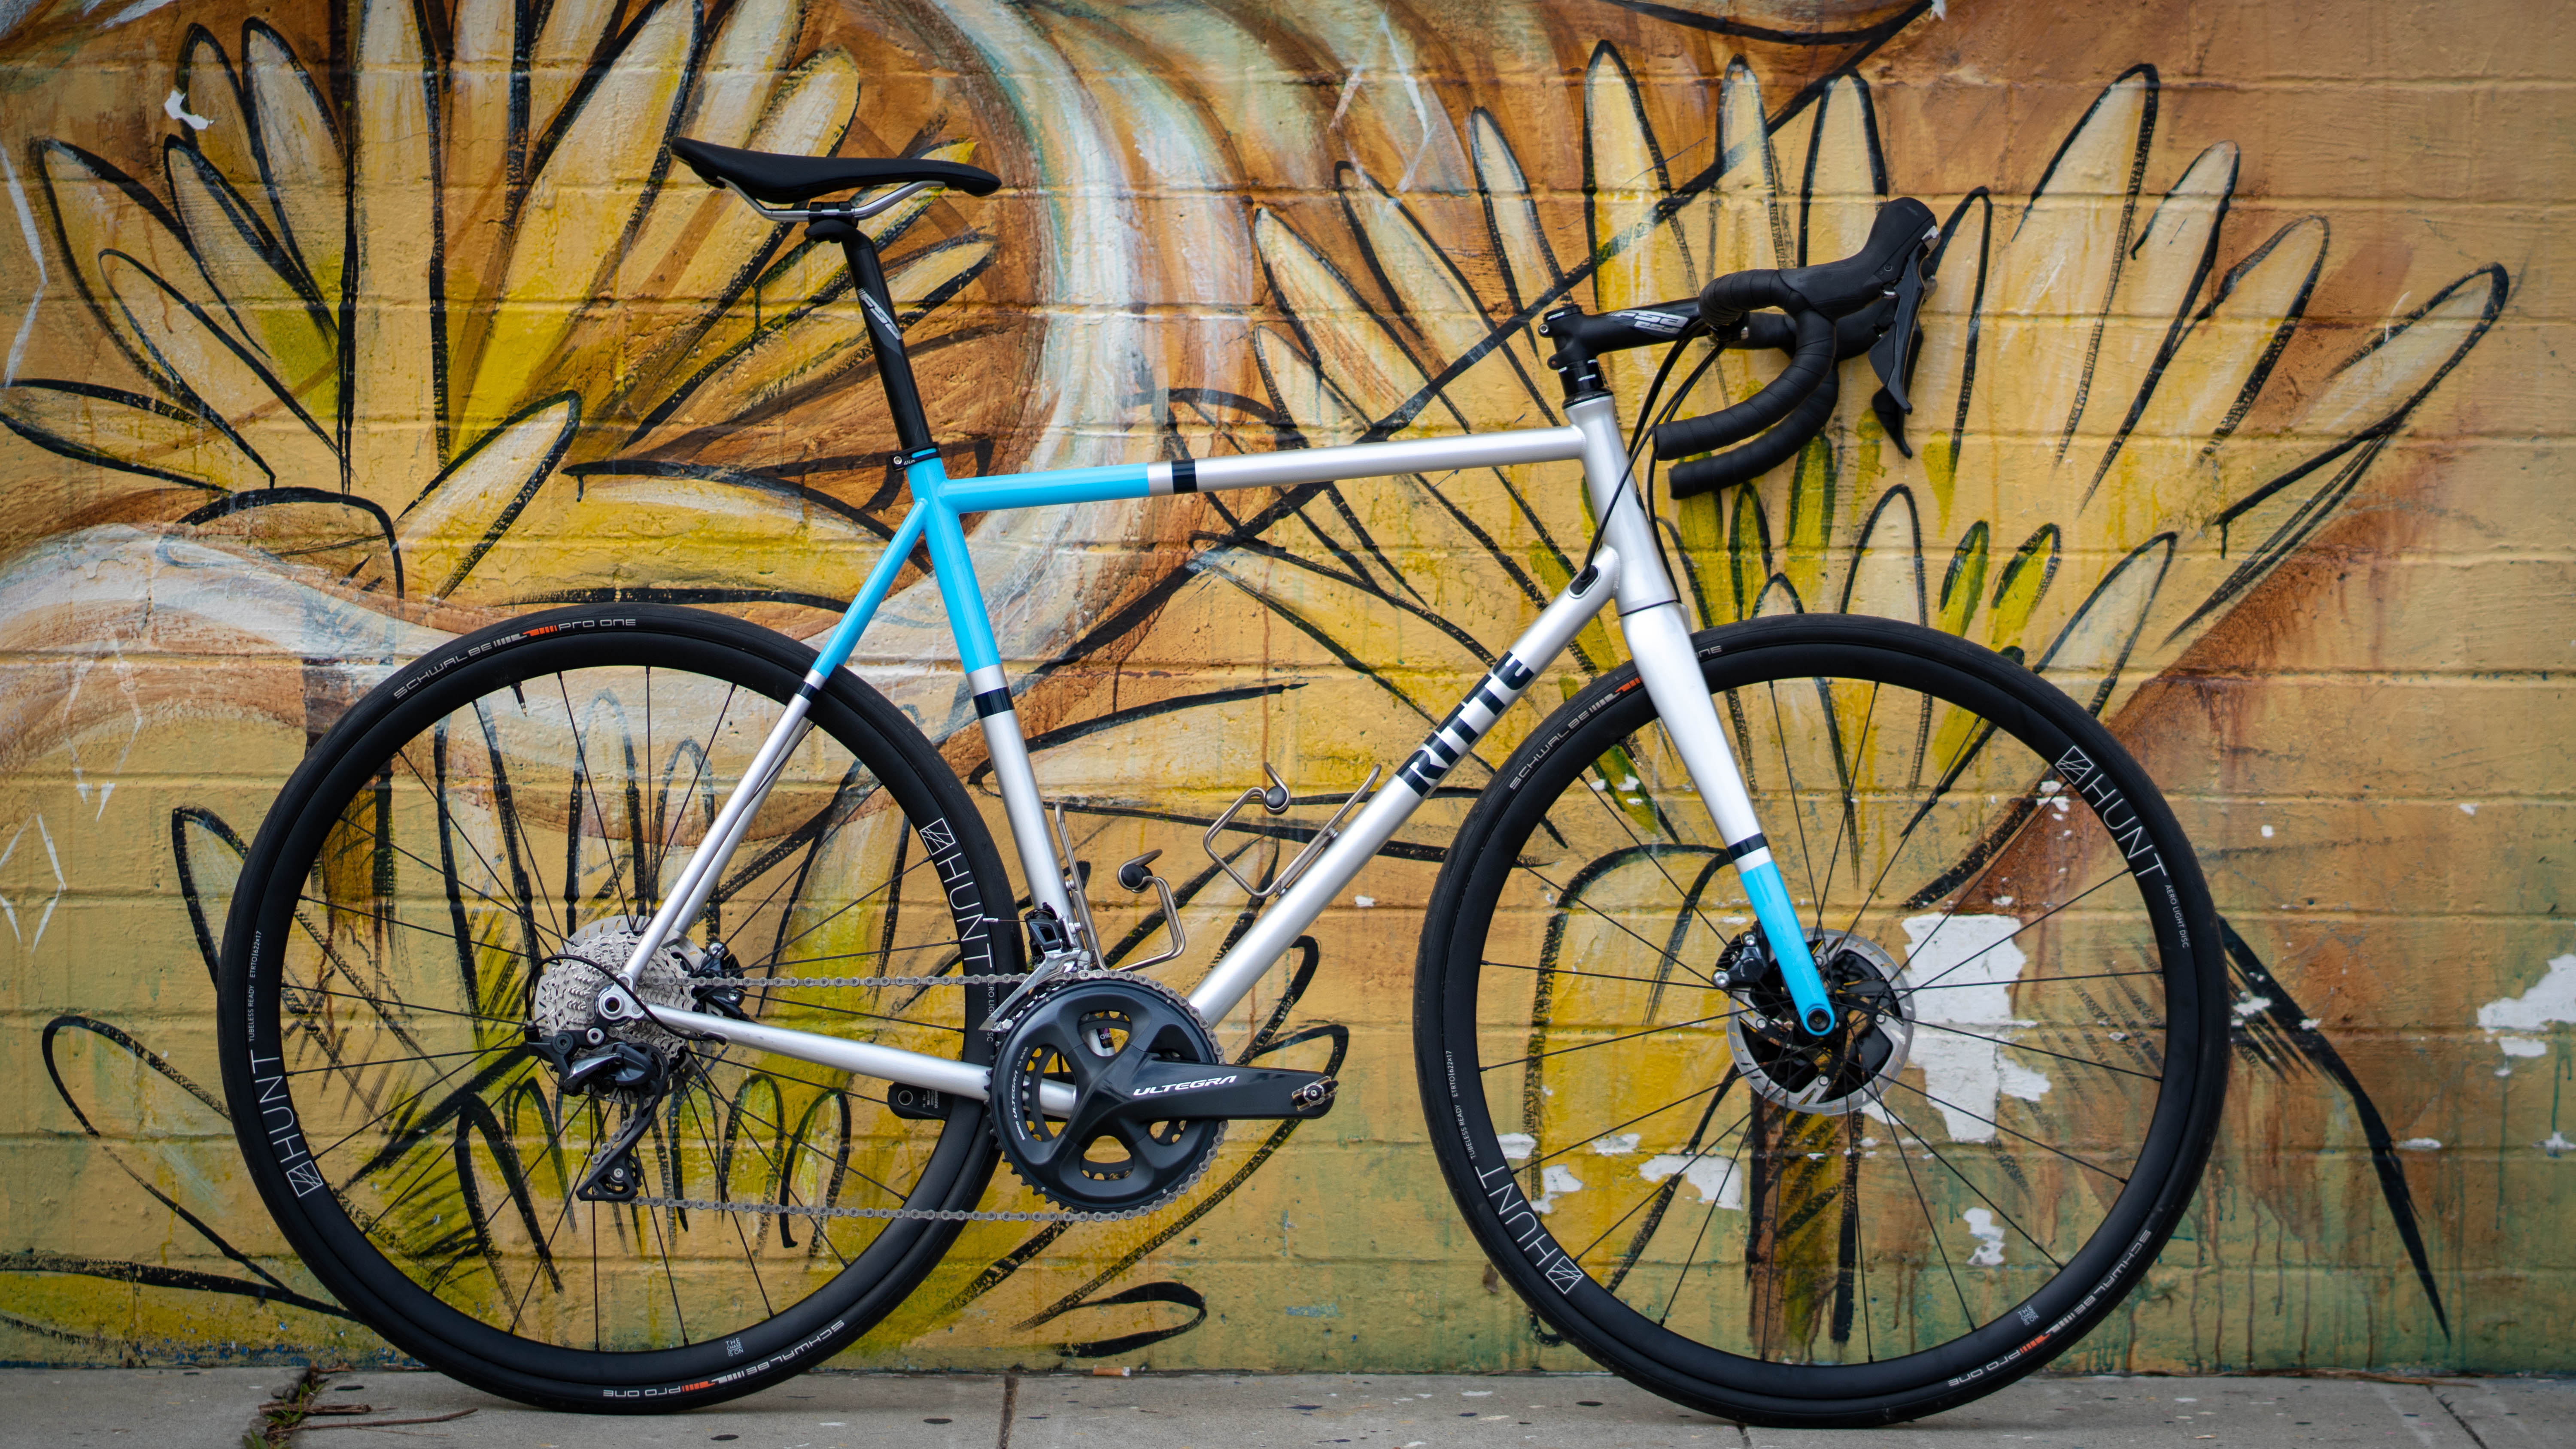 Ritte's new Phantom blends traditional aesthetics with modern technology and frame standards.